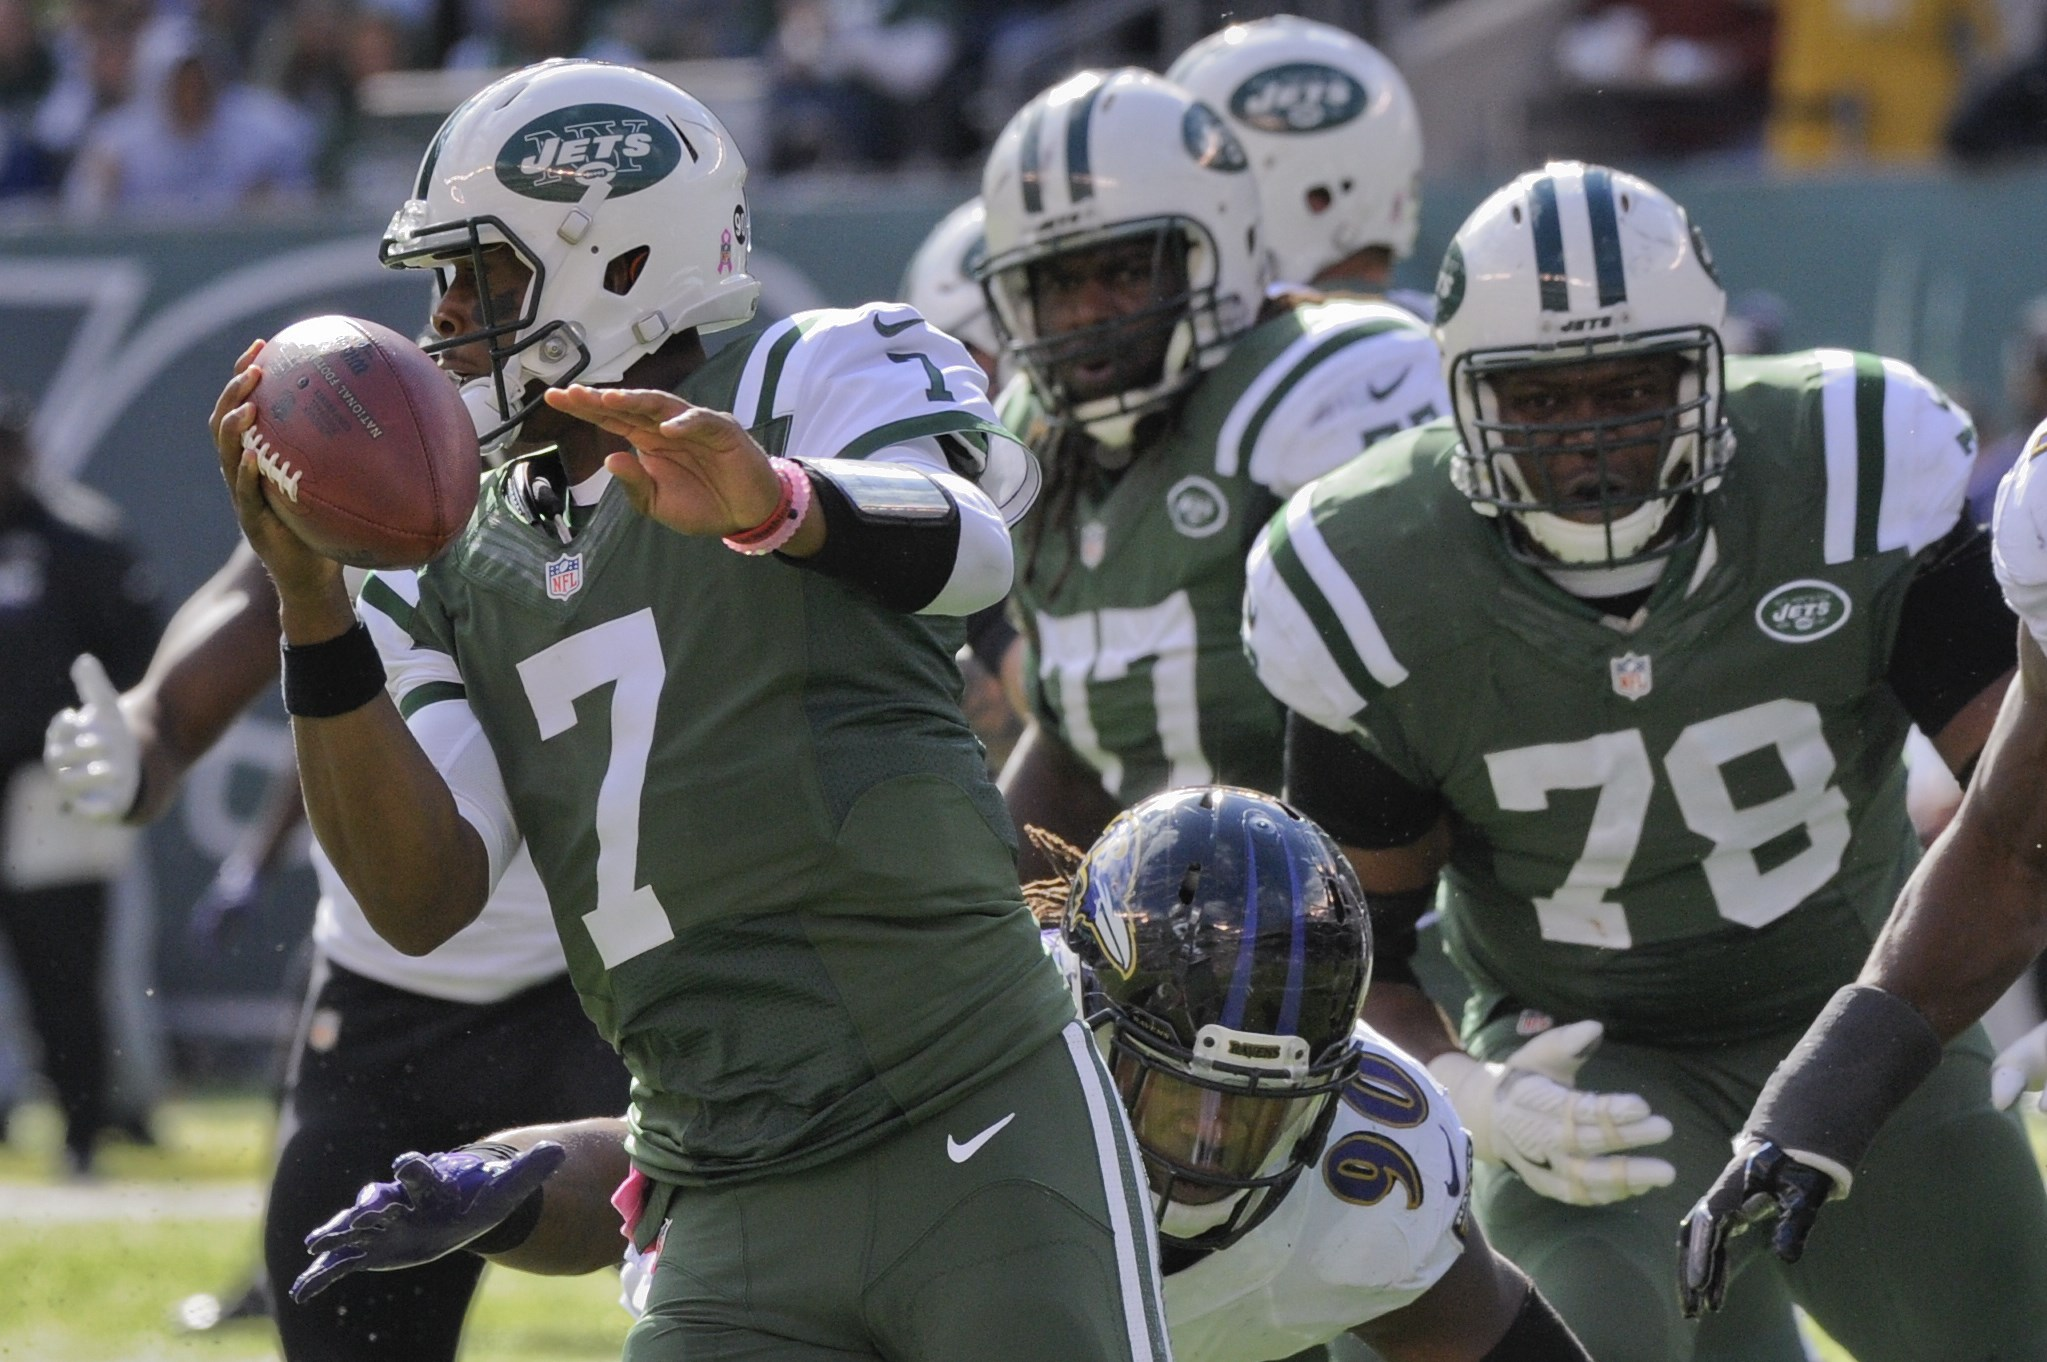 New York Jets quarterback Geno Smith (7) rolls out of the pocket as he looks to throw against the Baltimore Ravens during the second quarter of an NFL football game, Sunday, Oct. 23, 2016, in East Rutherford, N.J. (AP Photo/Bill Kostroun)